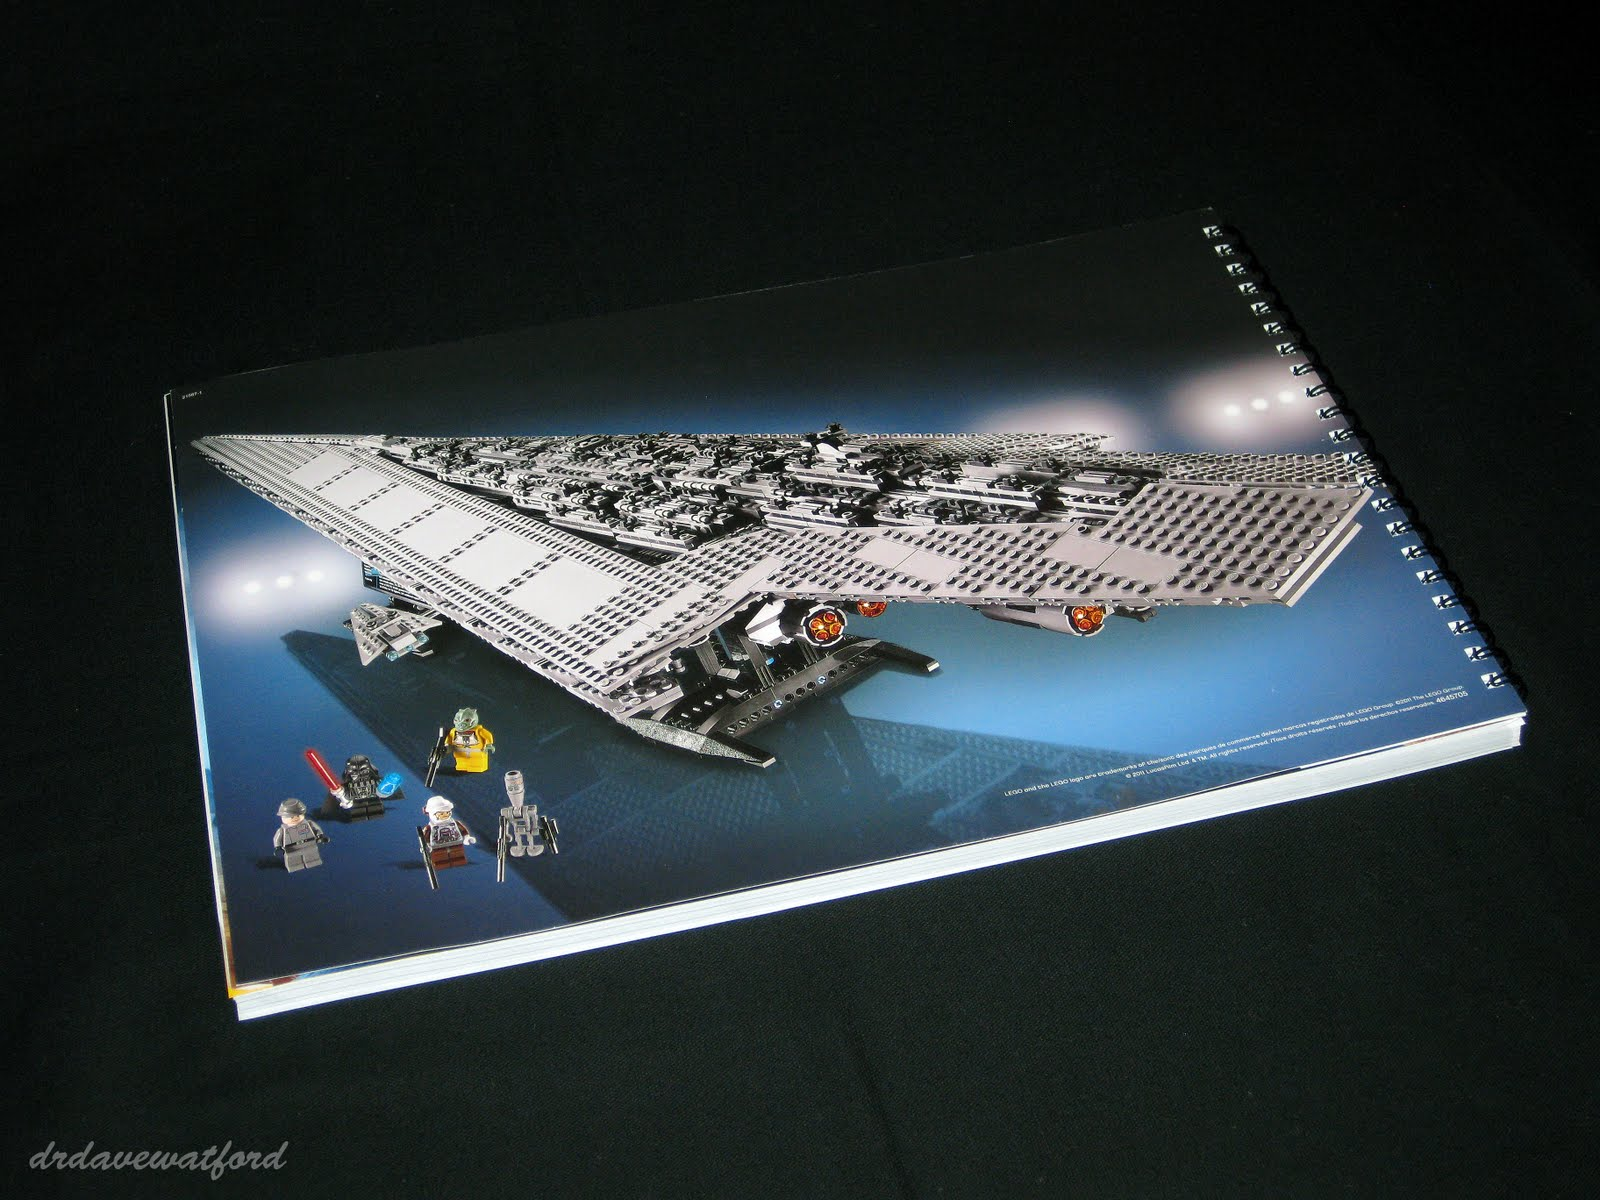 lego slave 1 instructions 6209